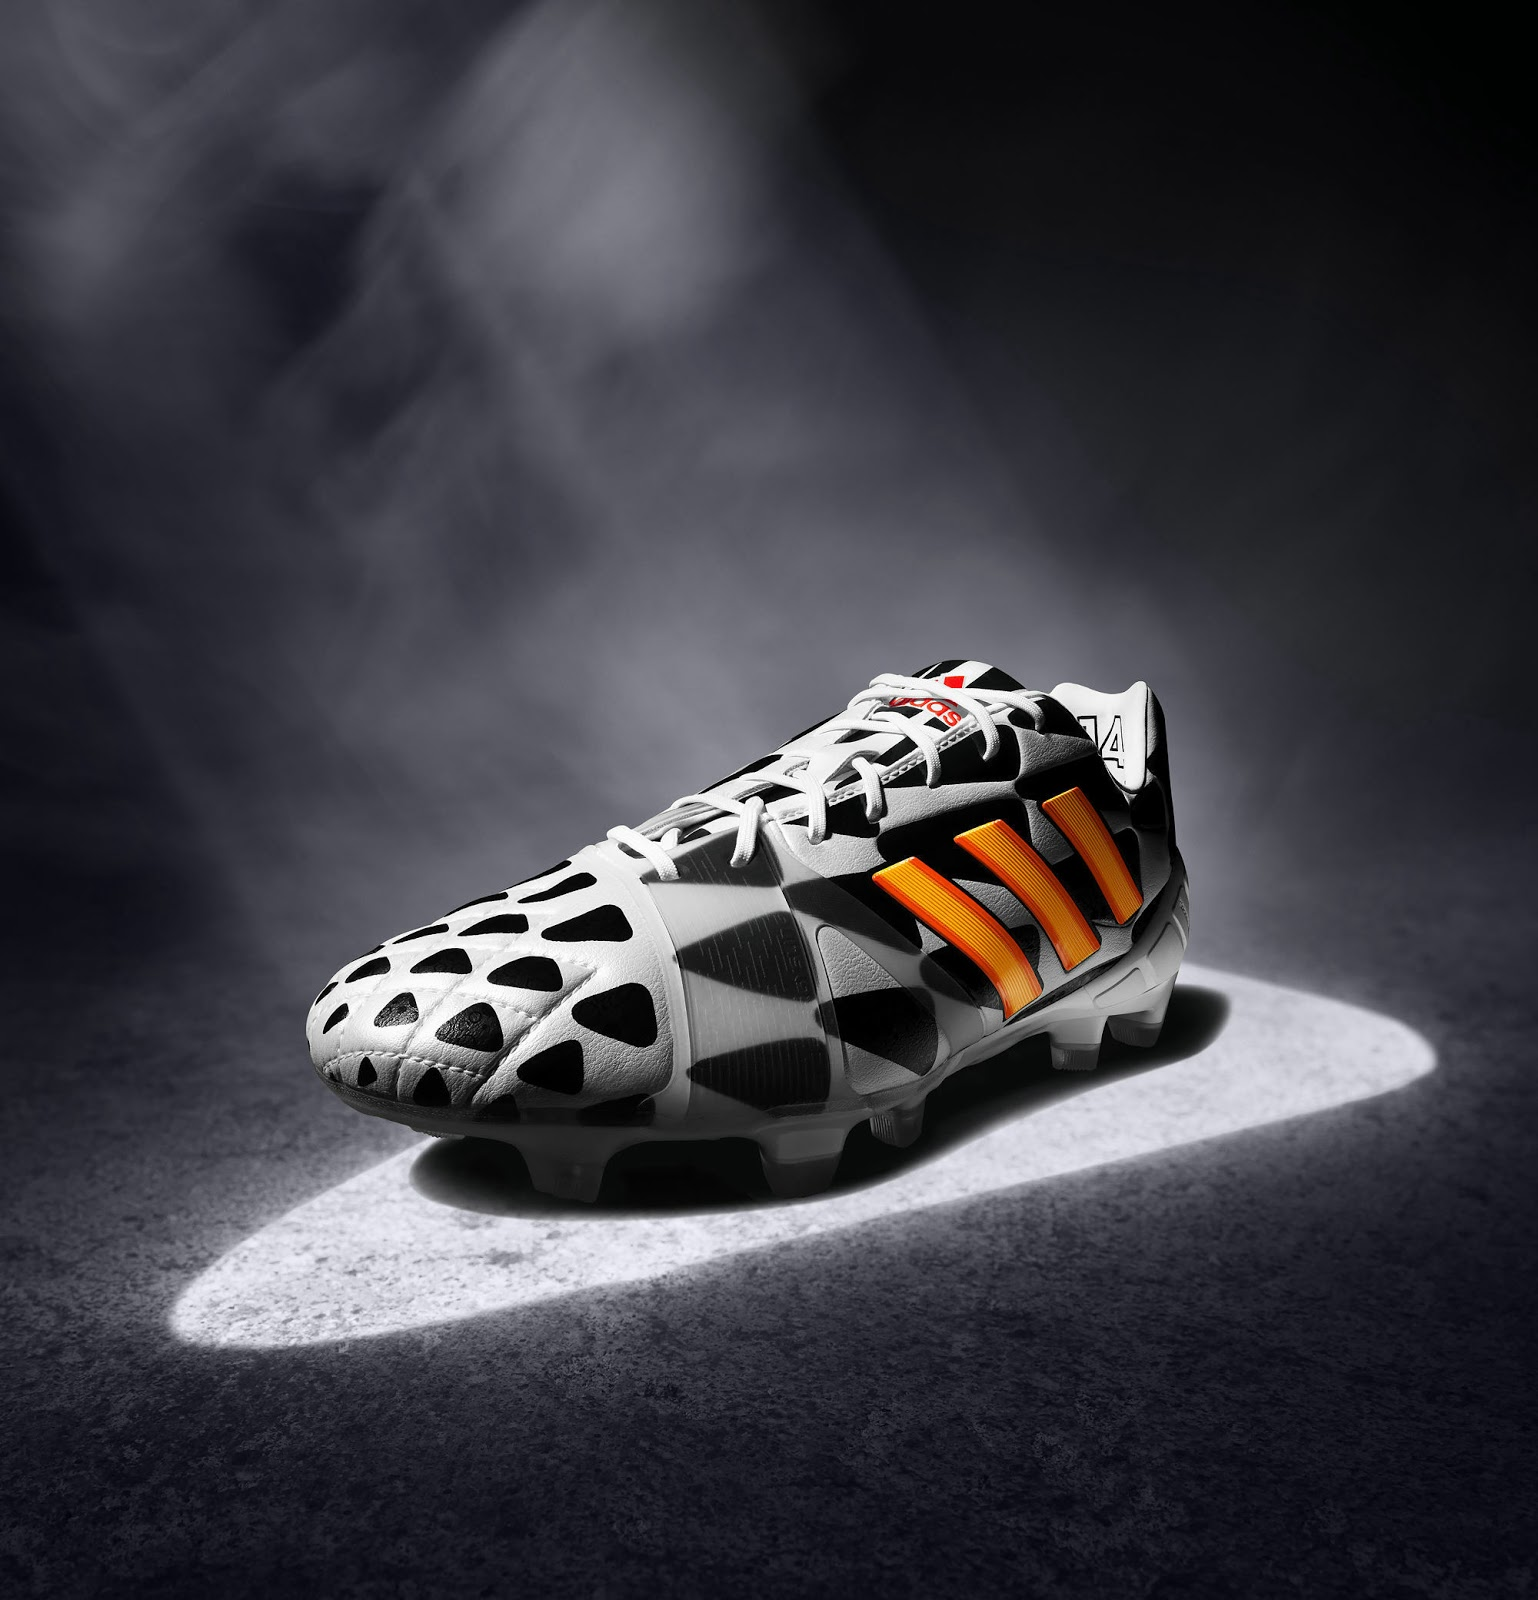 Adidas World Cup Boots